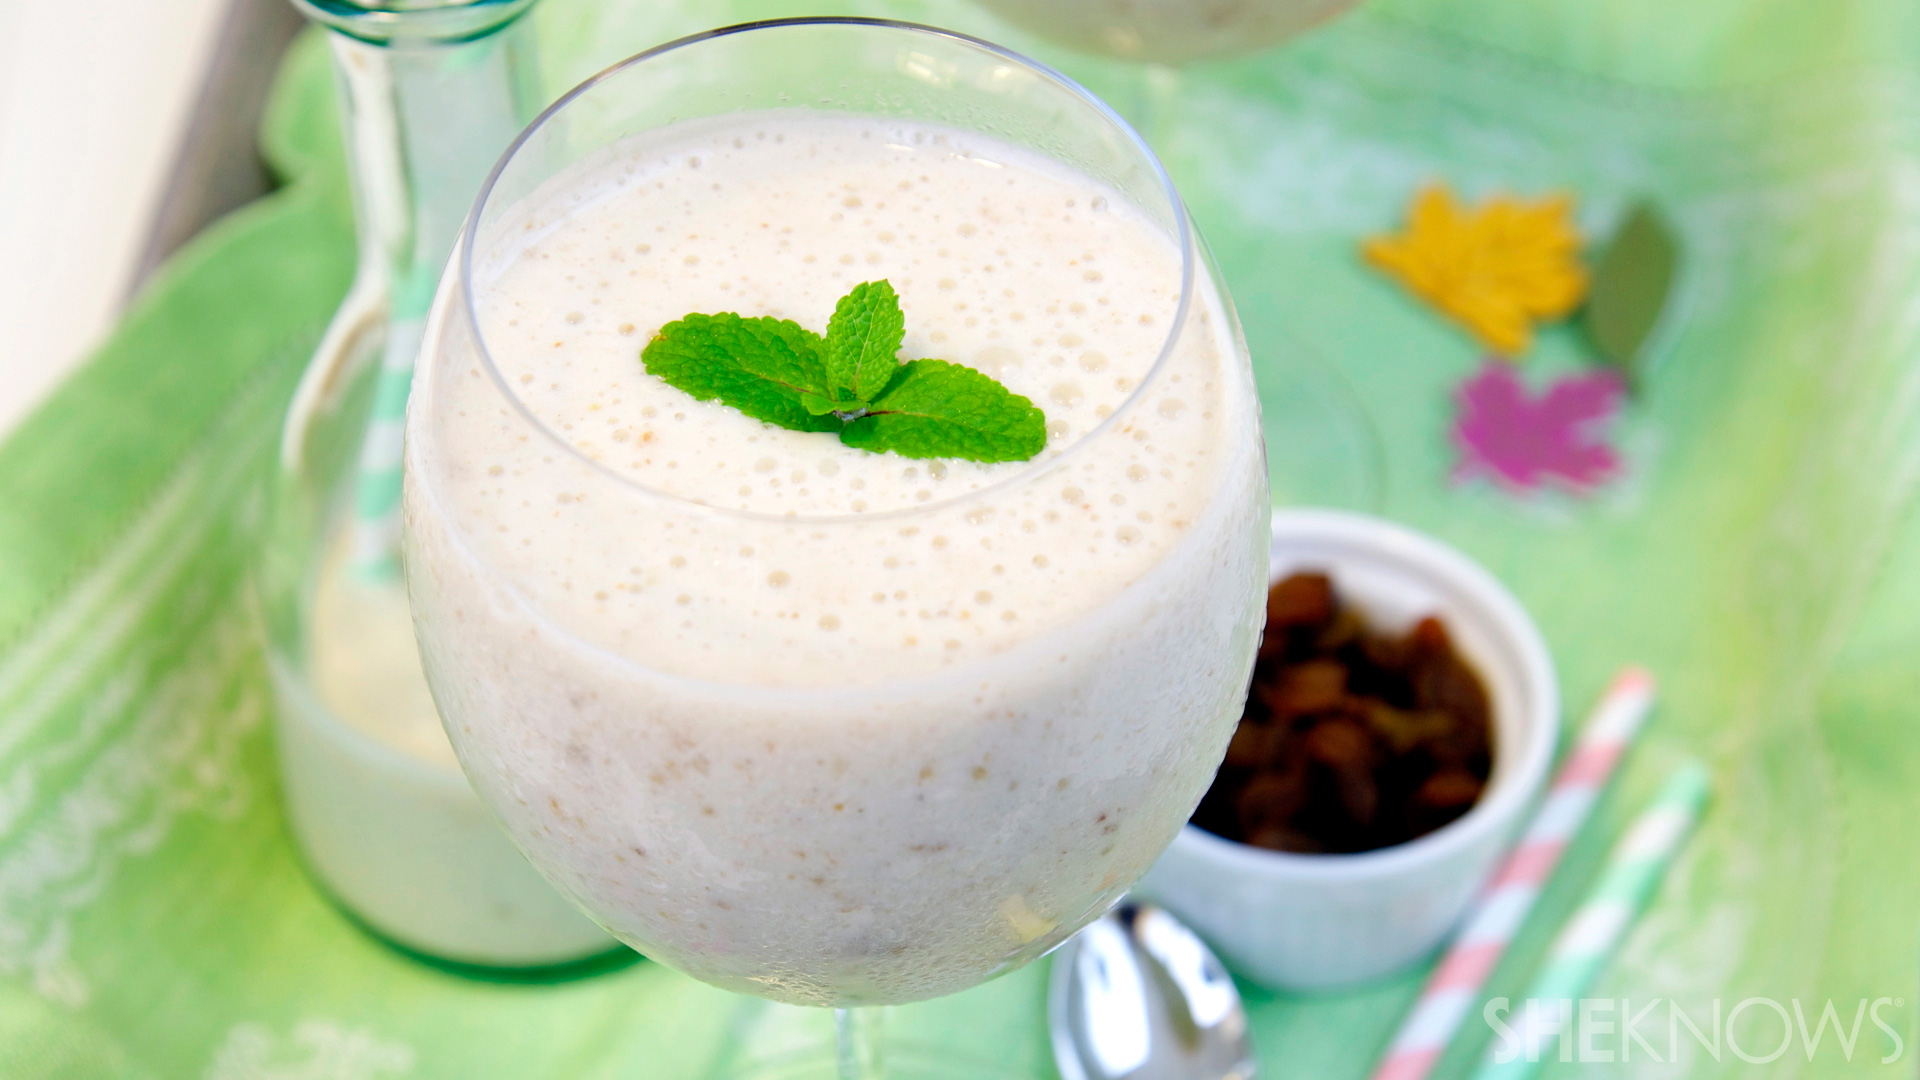 Boozy banana rum raisin smoothie recipe